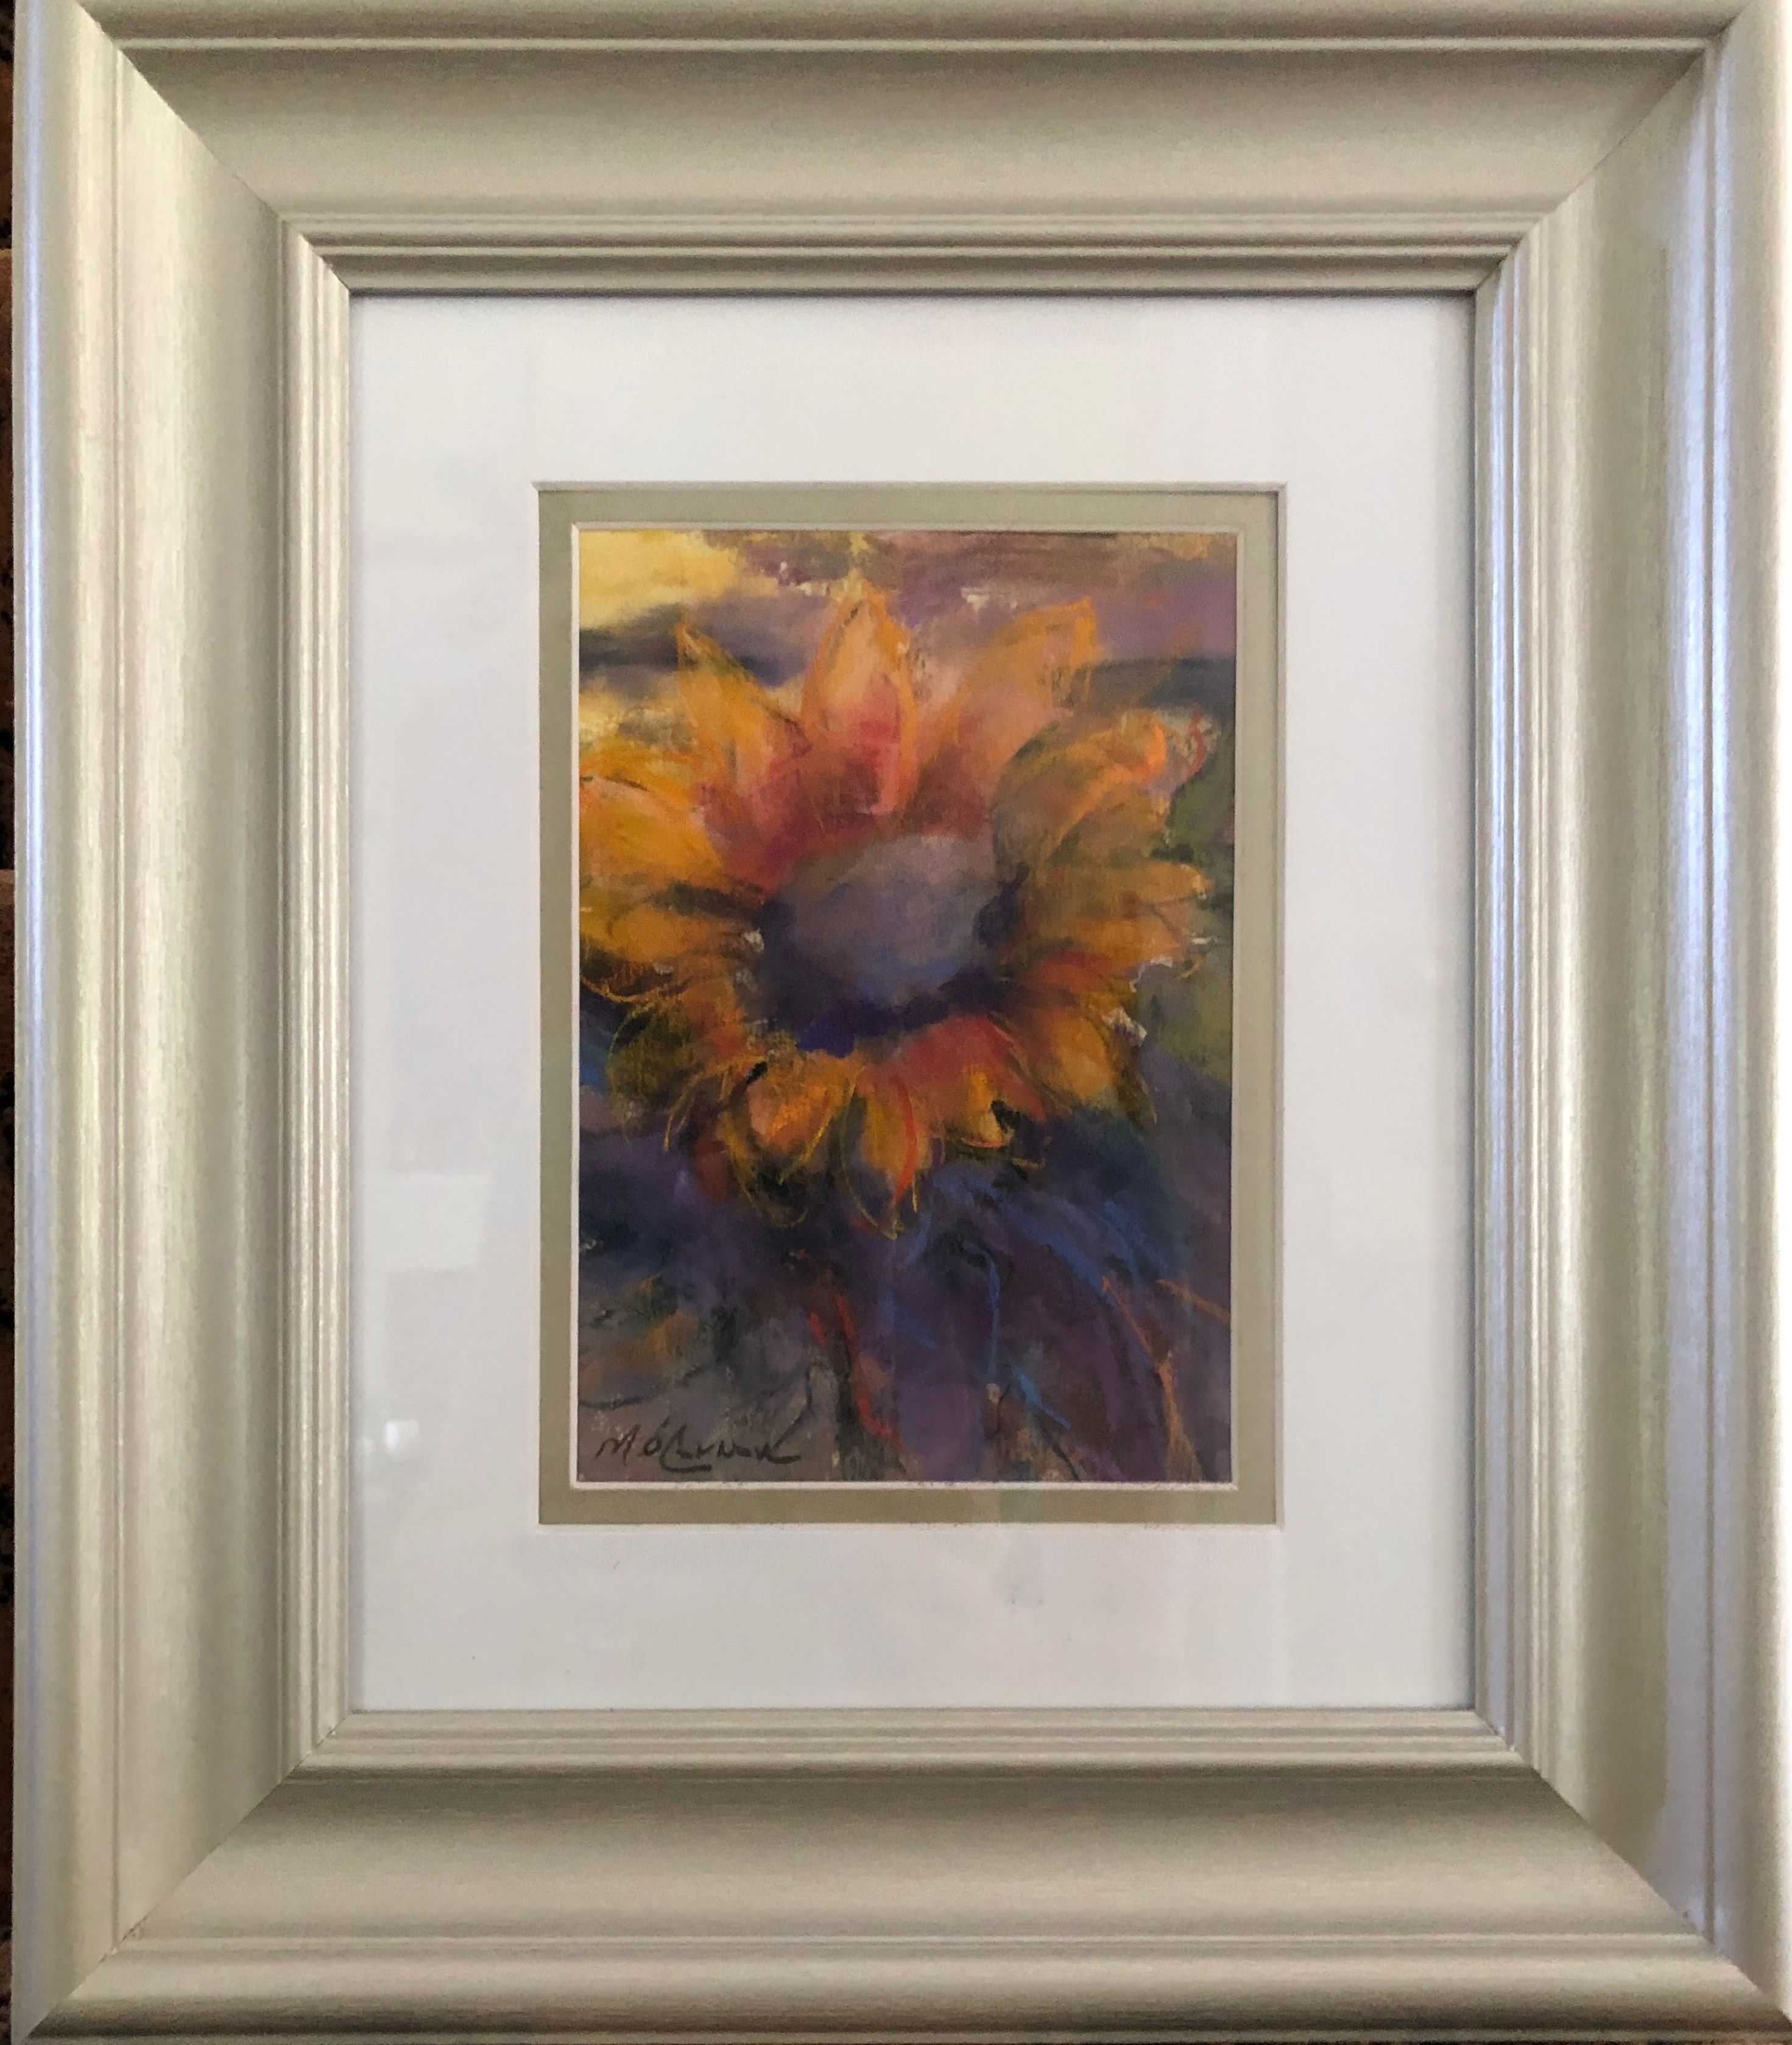 Artist: Mary O'Connor, Pastel on Paper, Framed